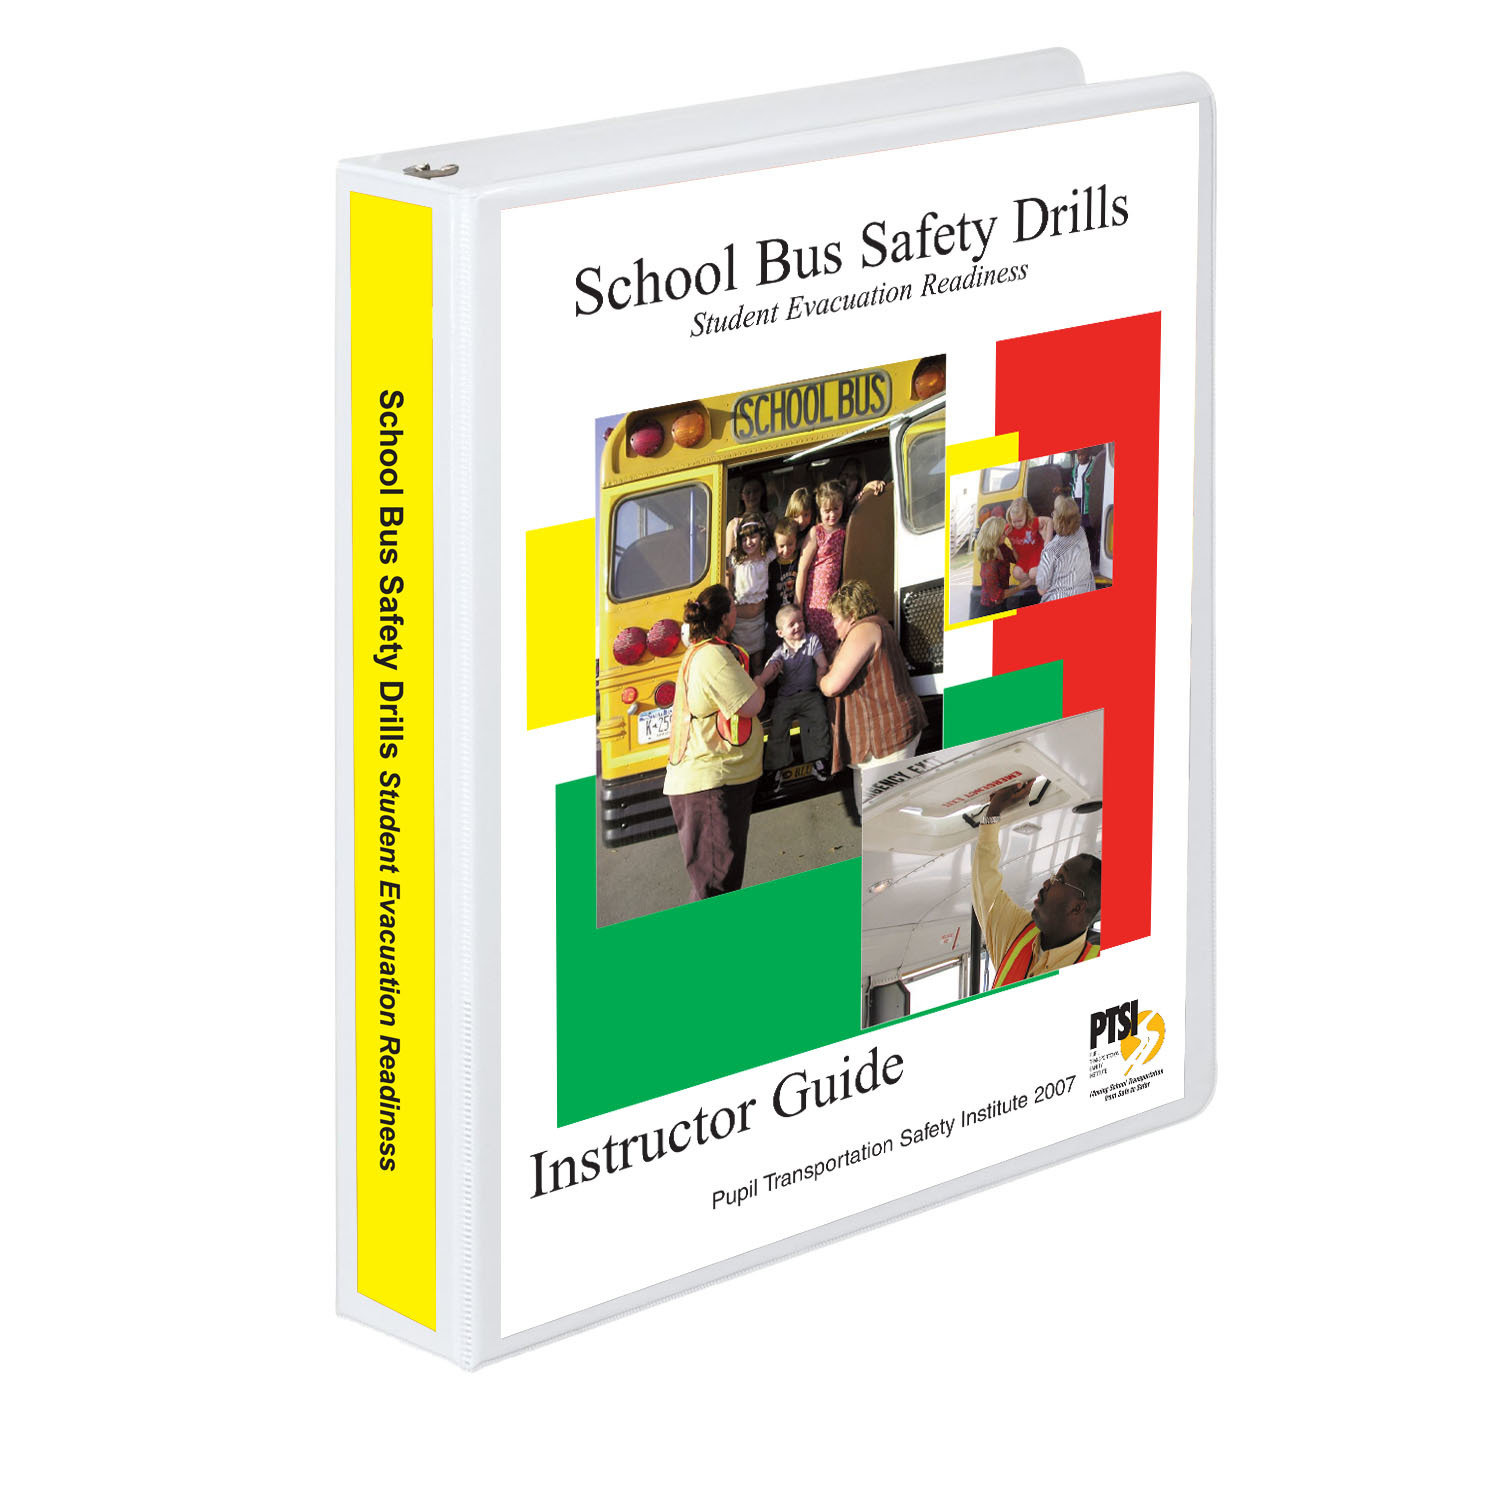 School Bus Safety Drills/Student Evacuation Readiness Training Curriculum